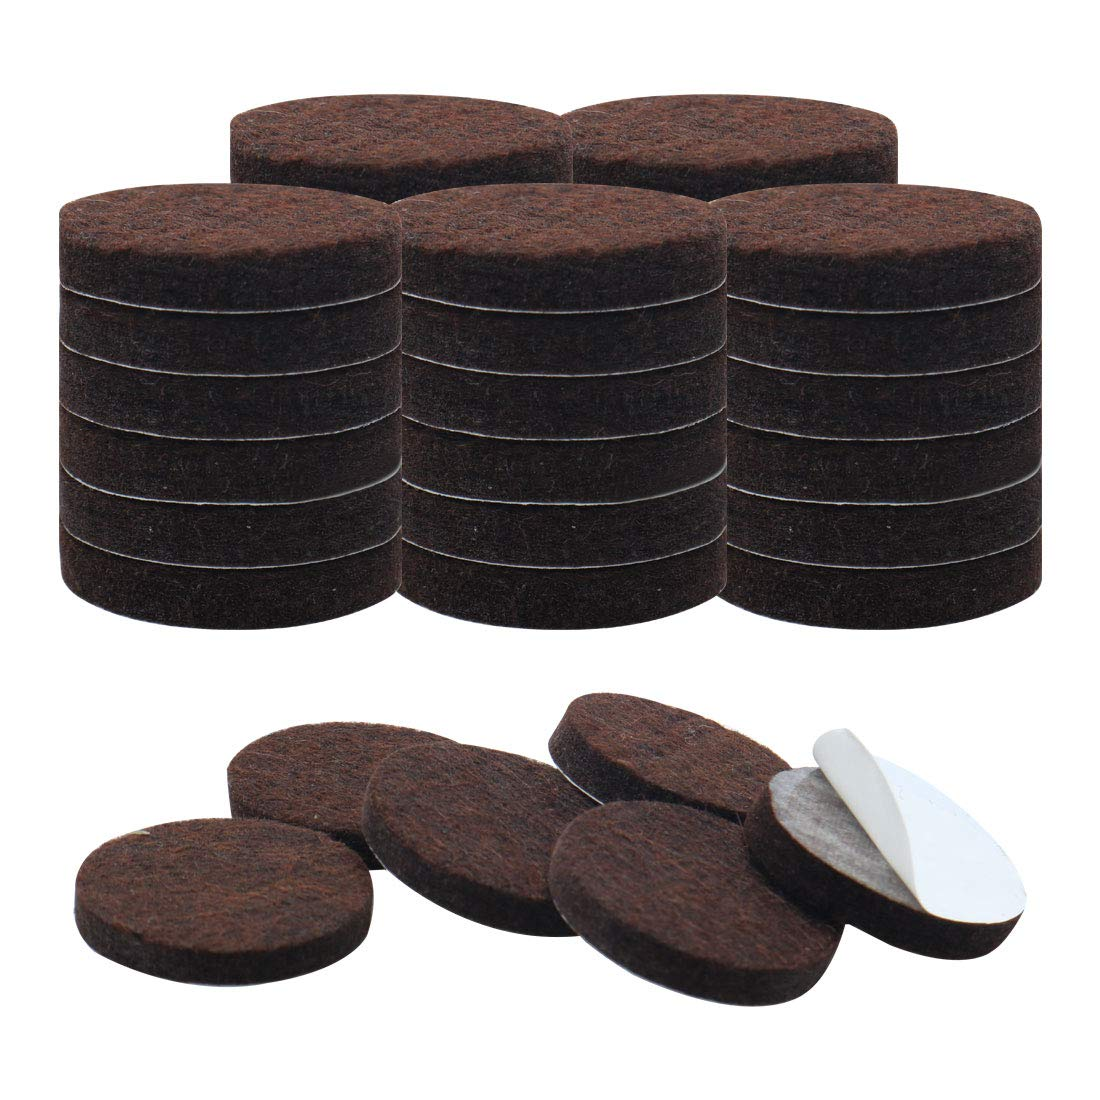 uxcell 36pcs Furniture Pads Round 1 1/4 inches Self-stick Non-slip Anti-scratch Felt Pads Floors Protector Dark Brown